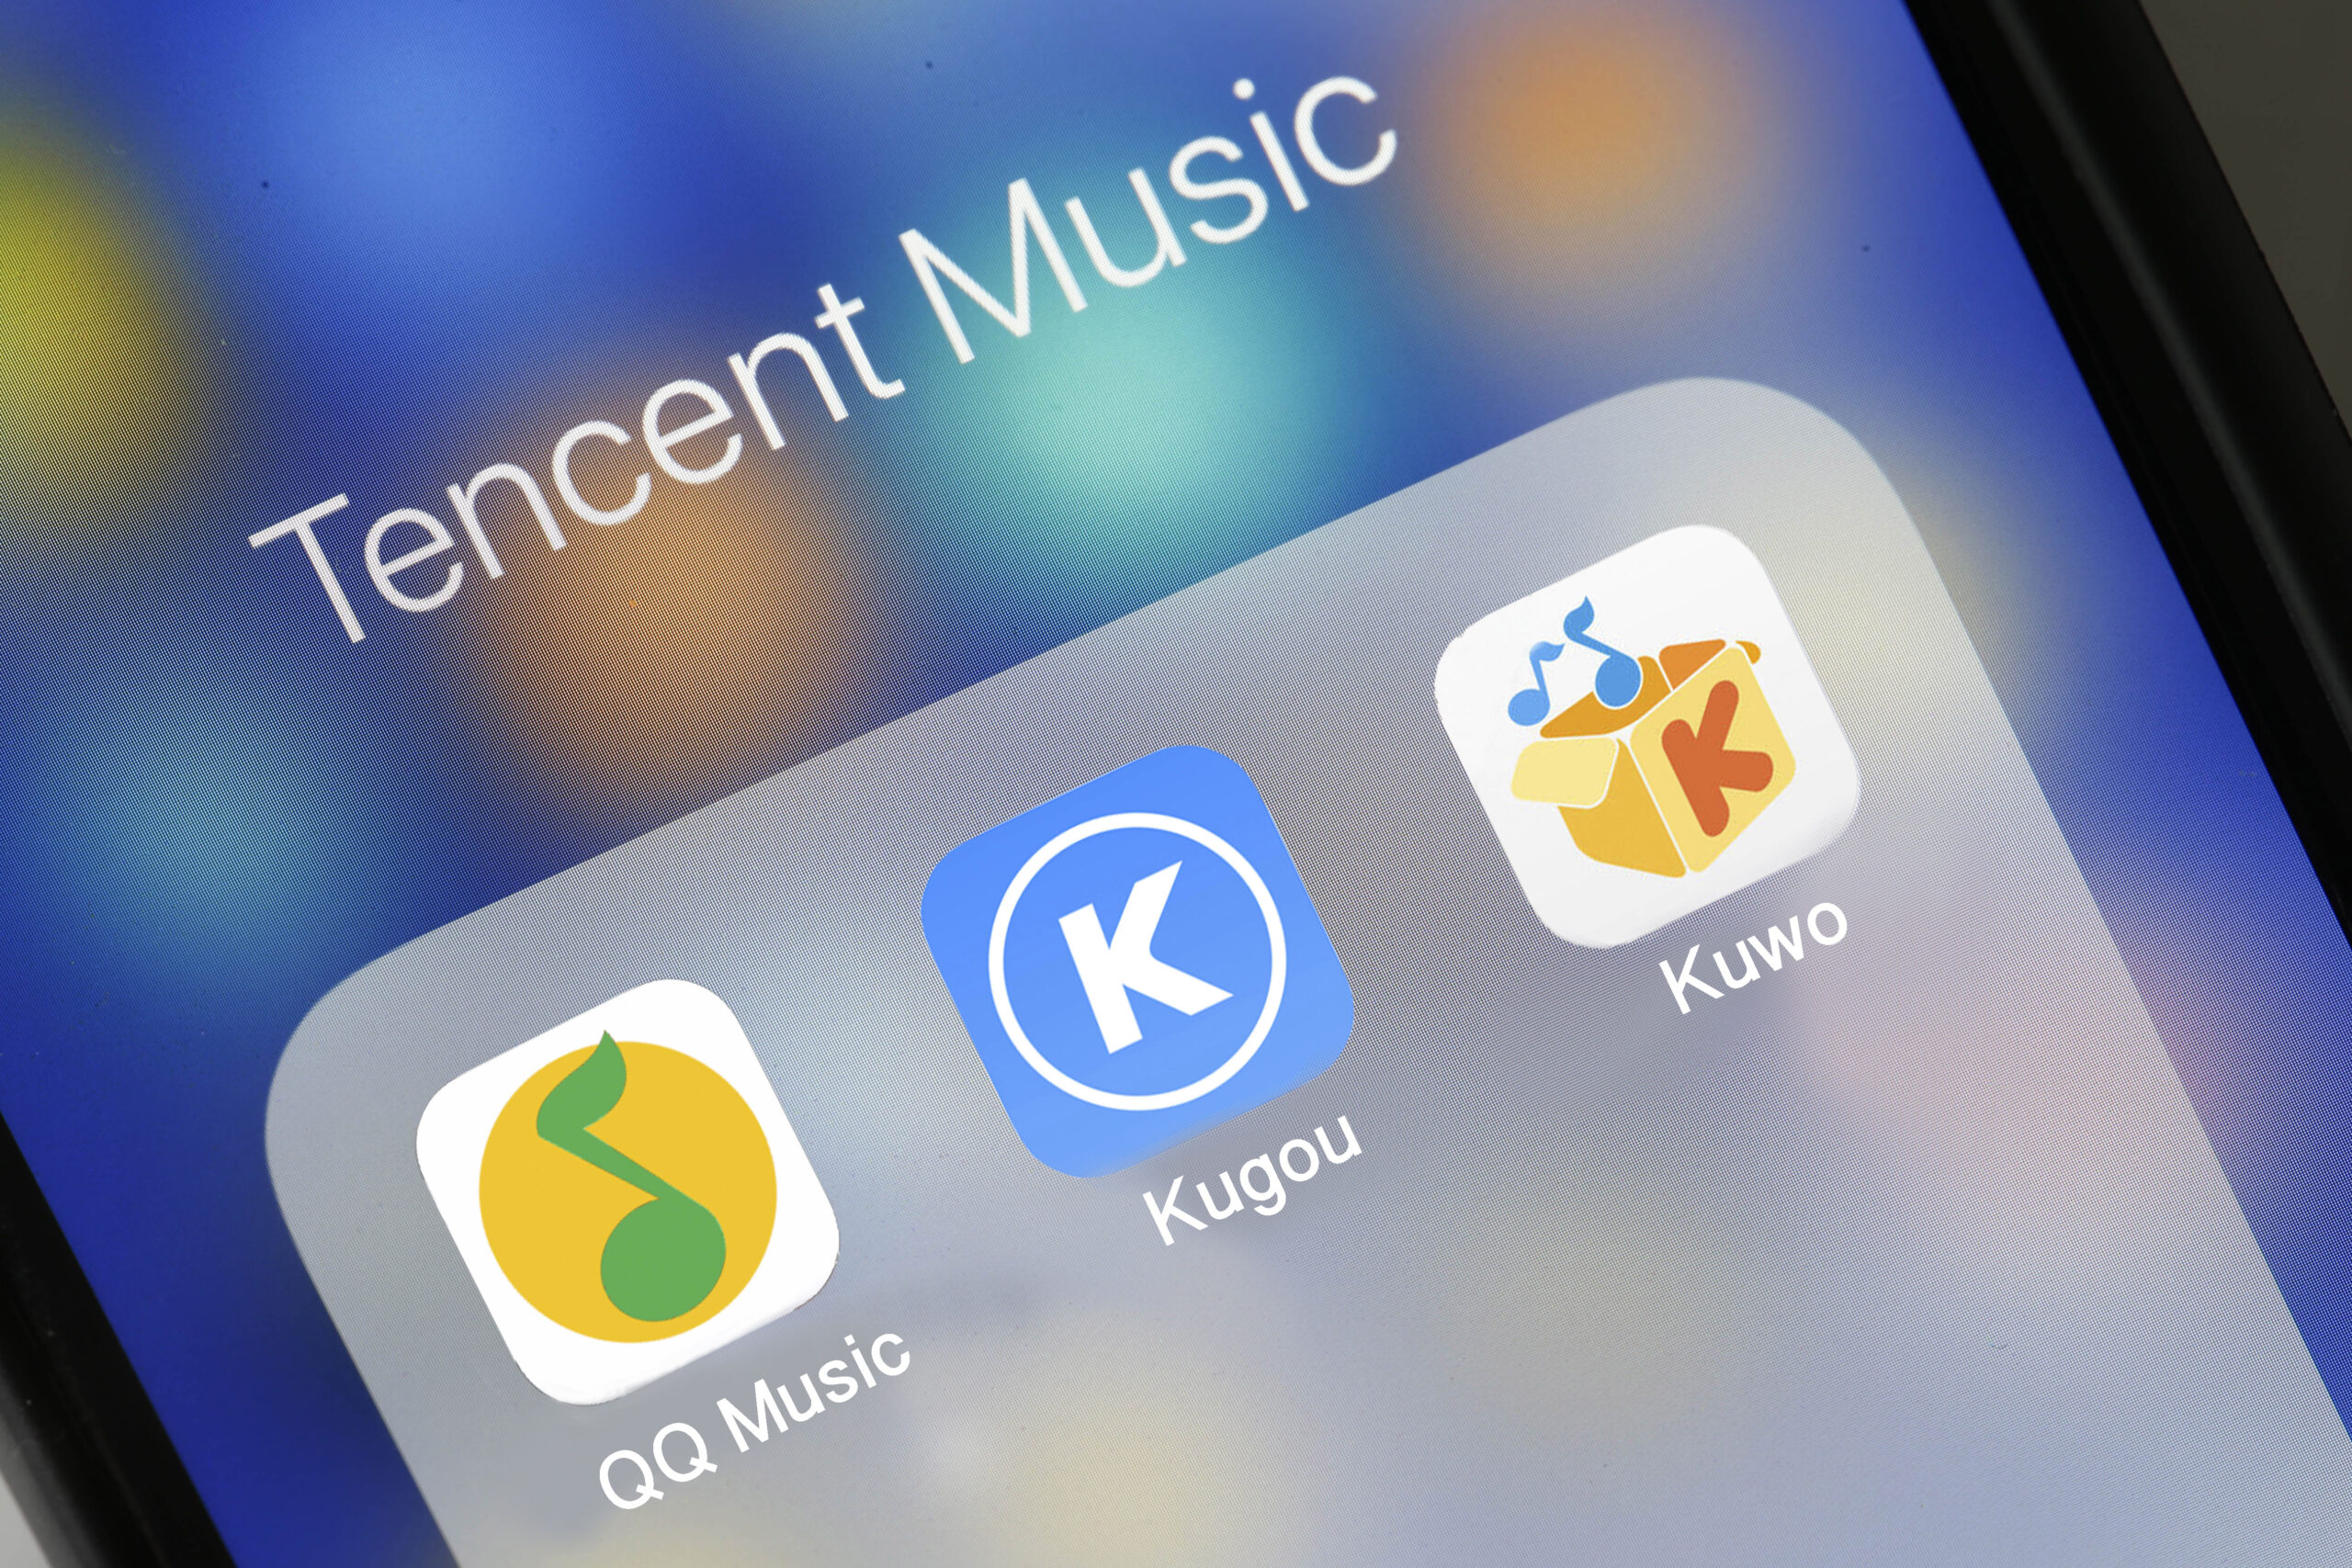 Tencent faces the music: Ends exclusive deals with labels